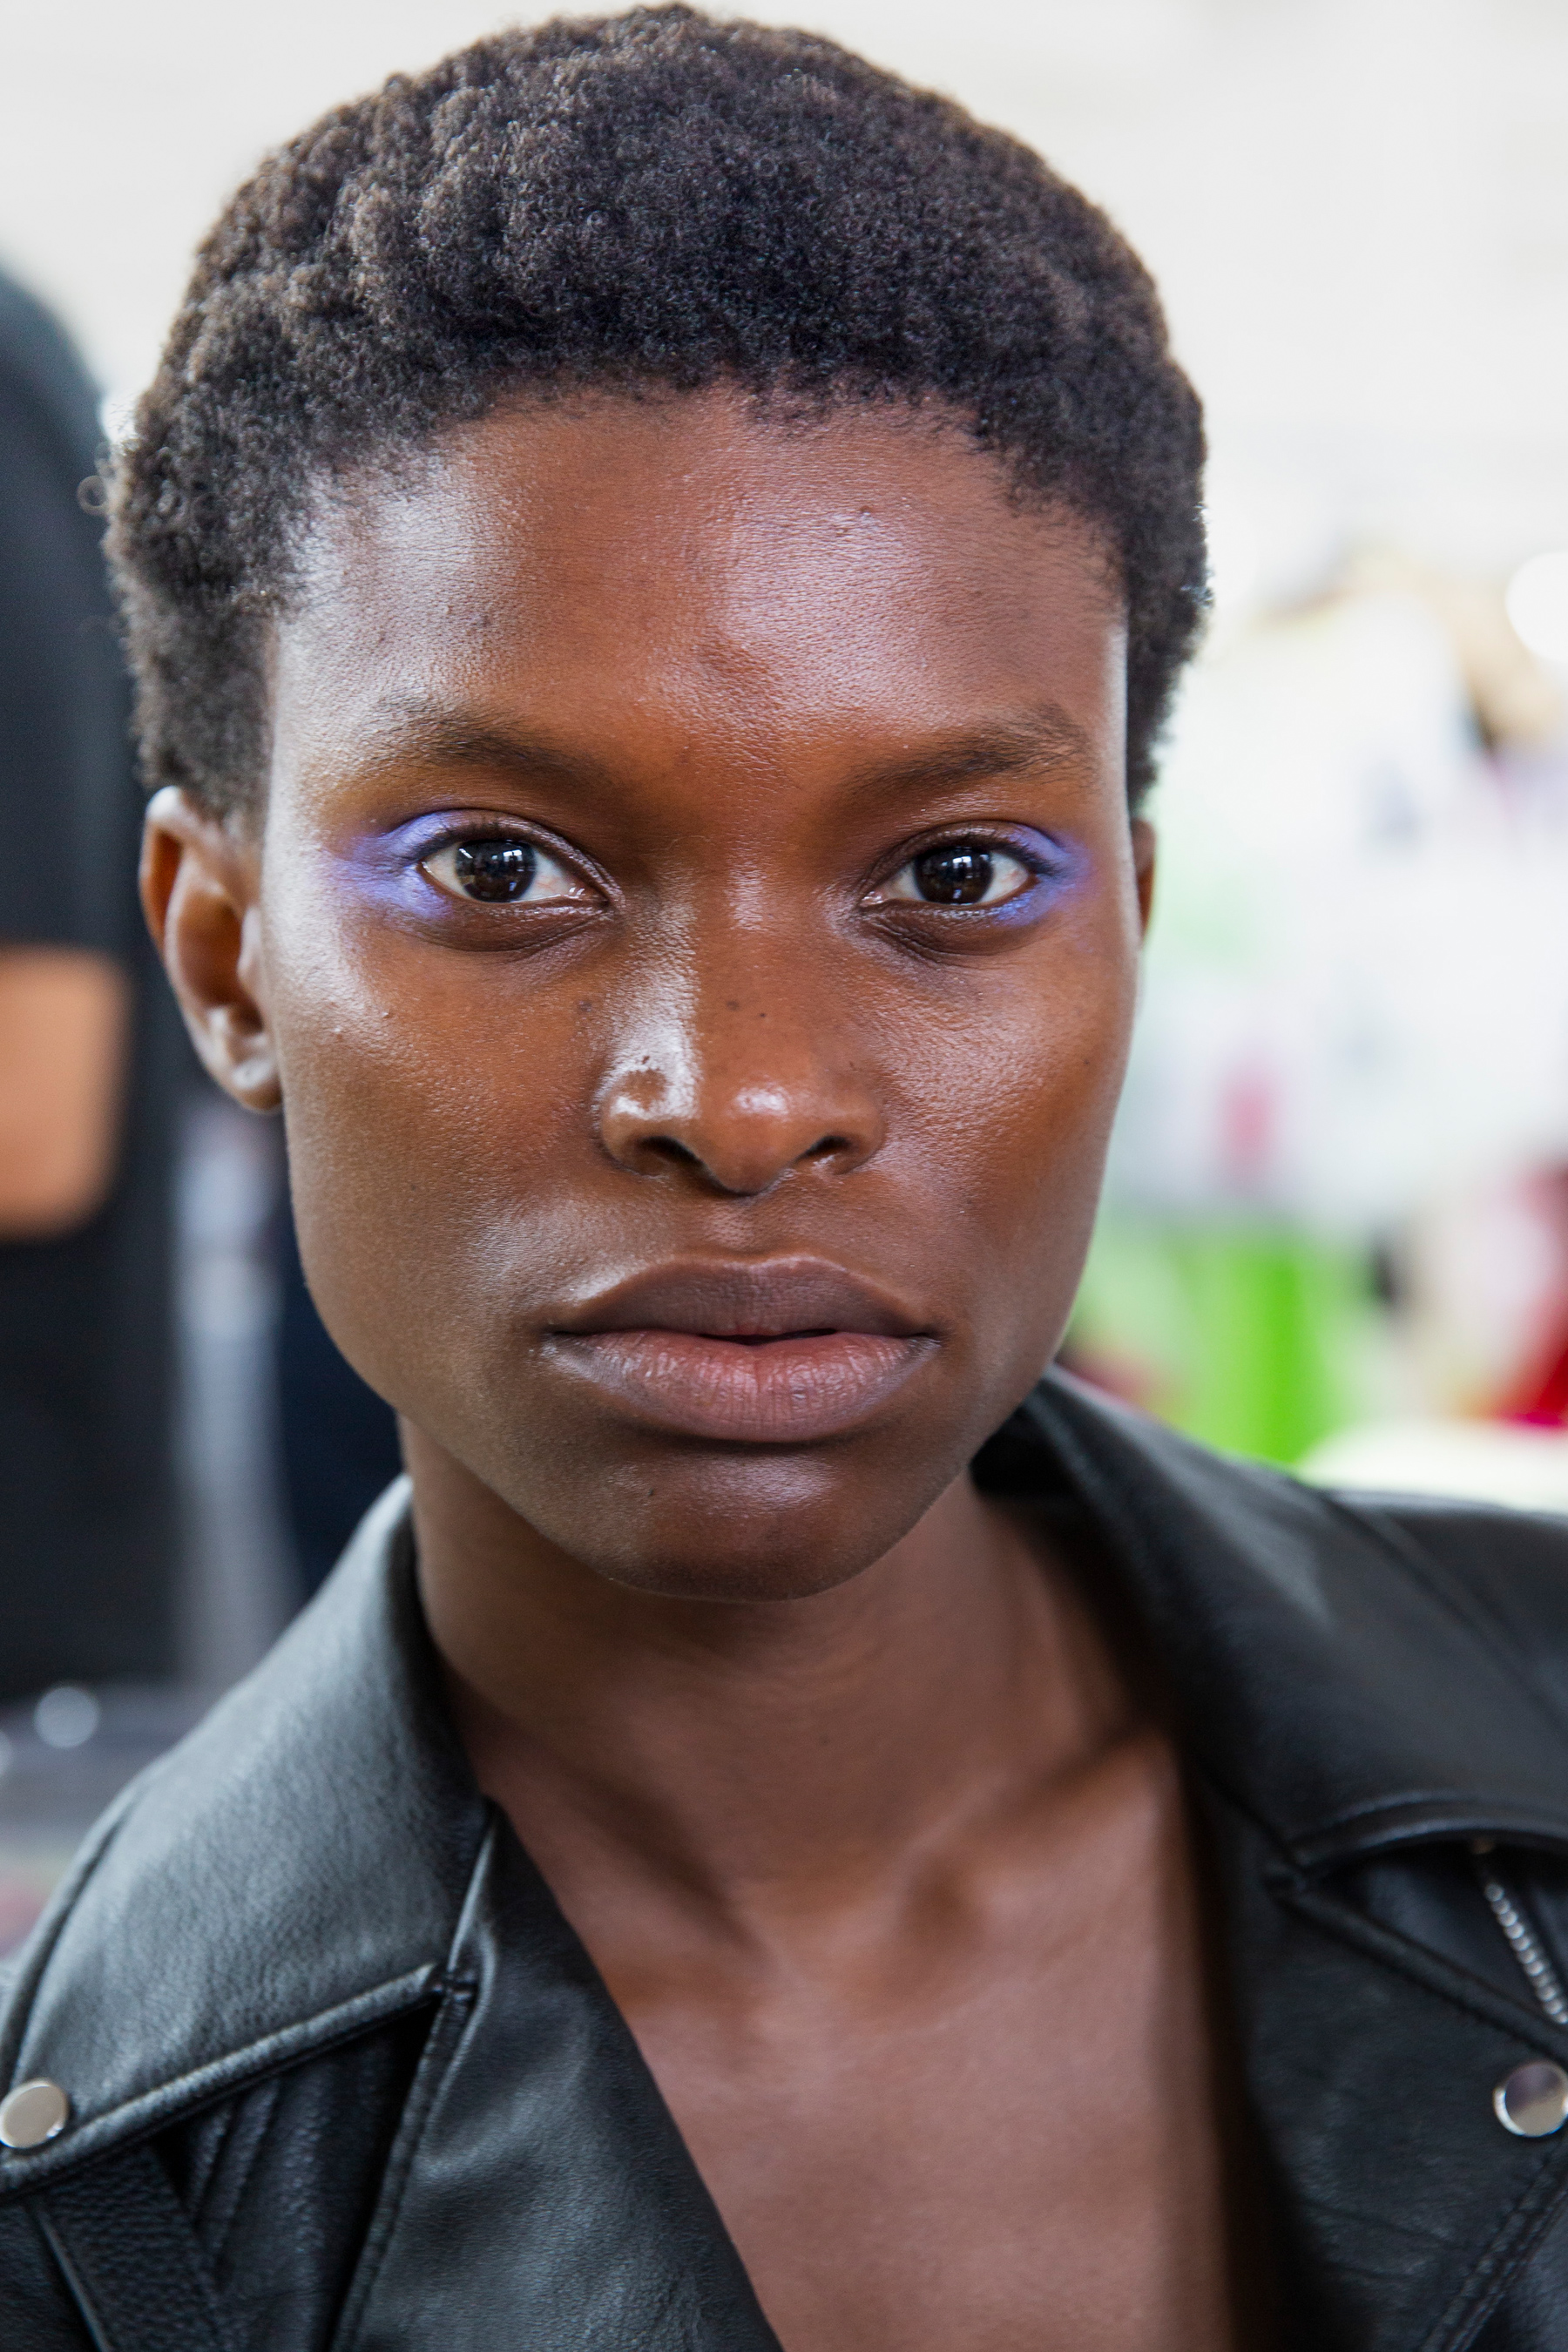 Maryam Nassir Zadeh Spring 2019 Fashion Show Backstage Beauty